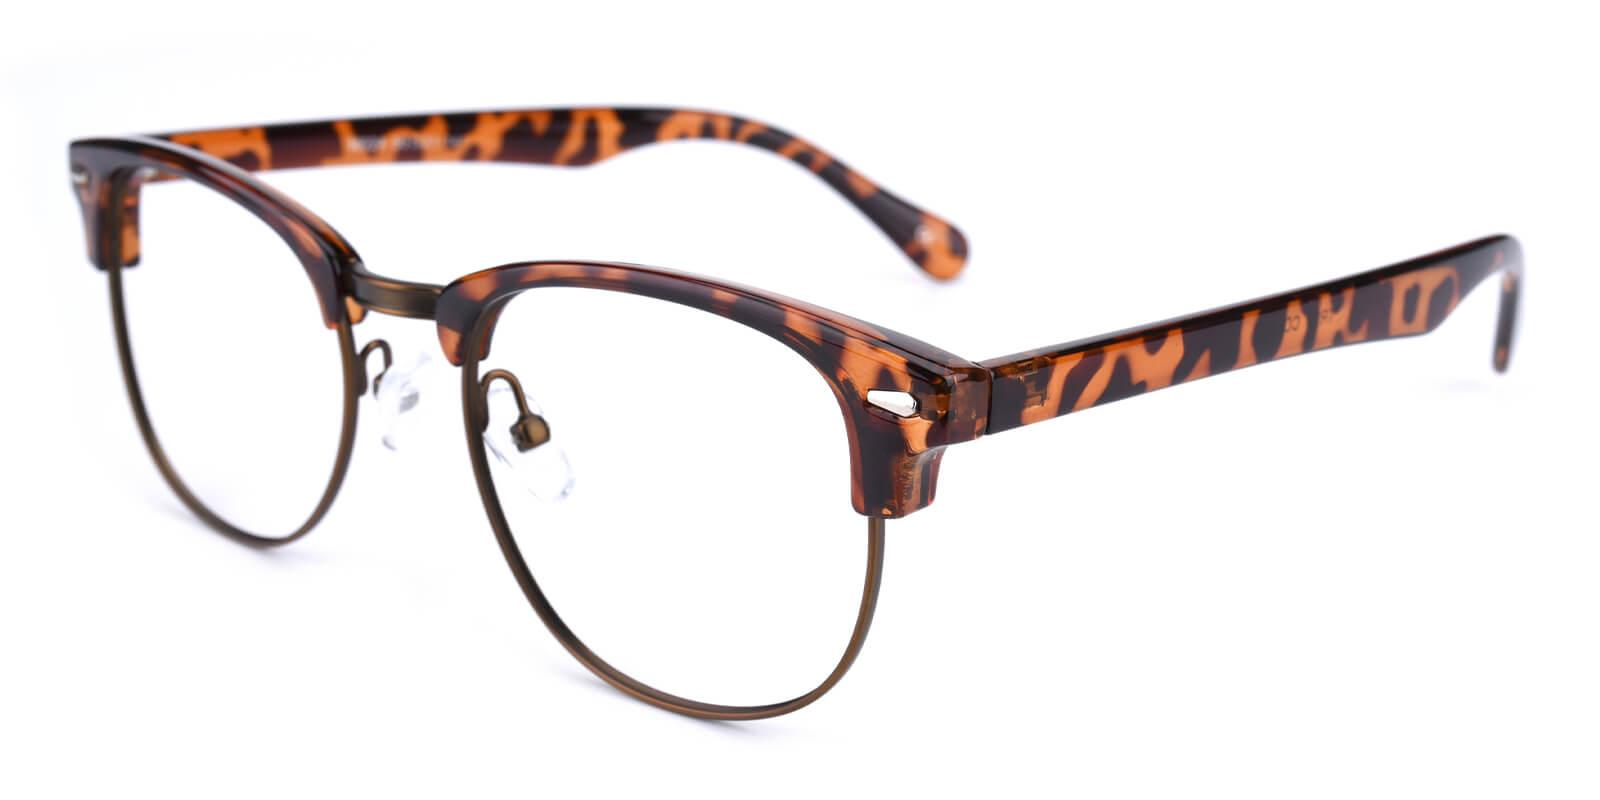 Ferrous-Leopard-Browline-Metal / Combination / Plastic-Eyeglasses-additional1